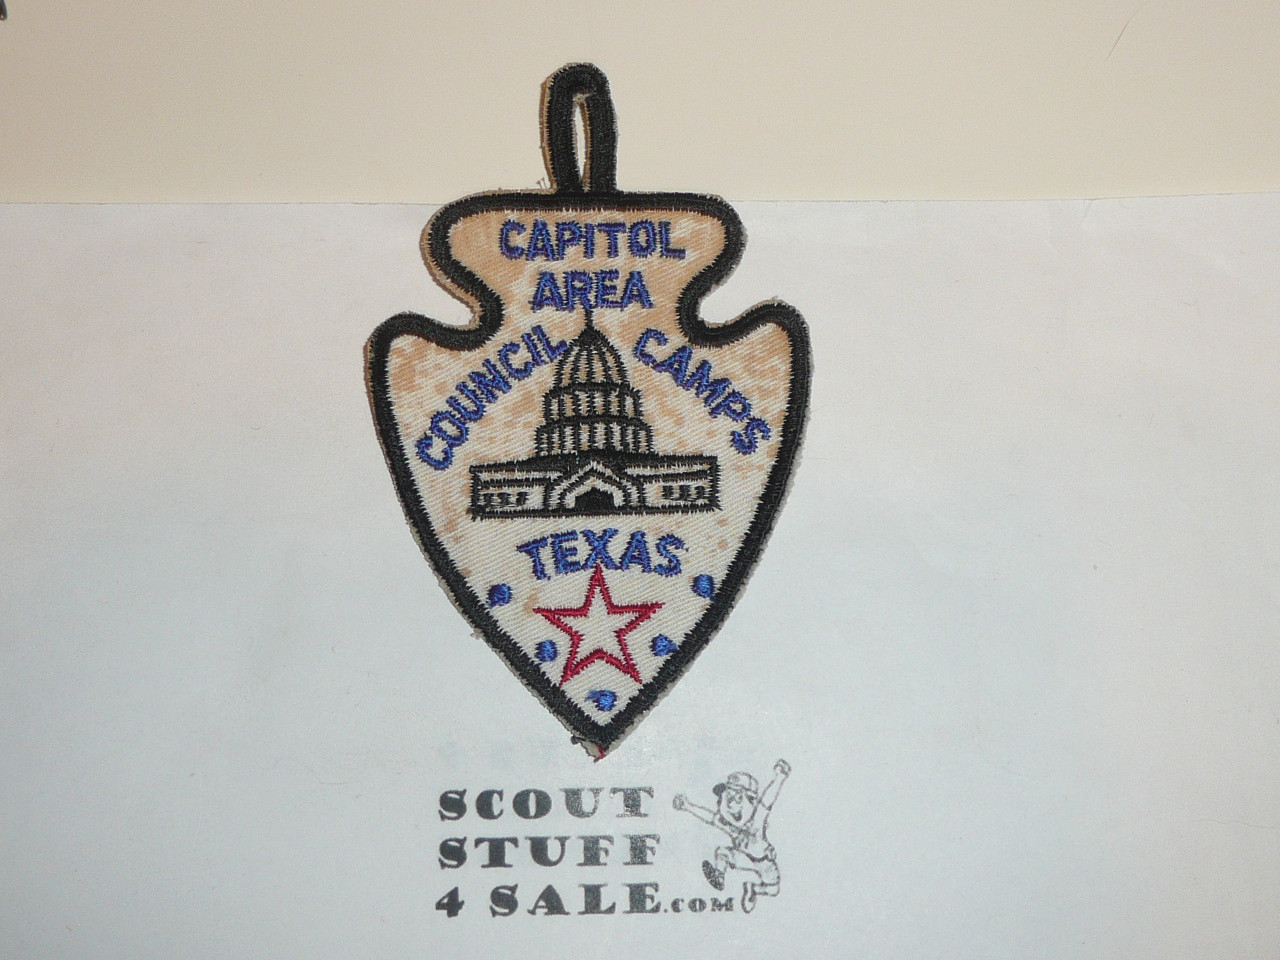 Capitol Area Council Scout Camps c/e Twill Patch, soiled